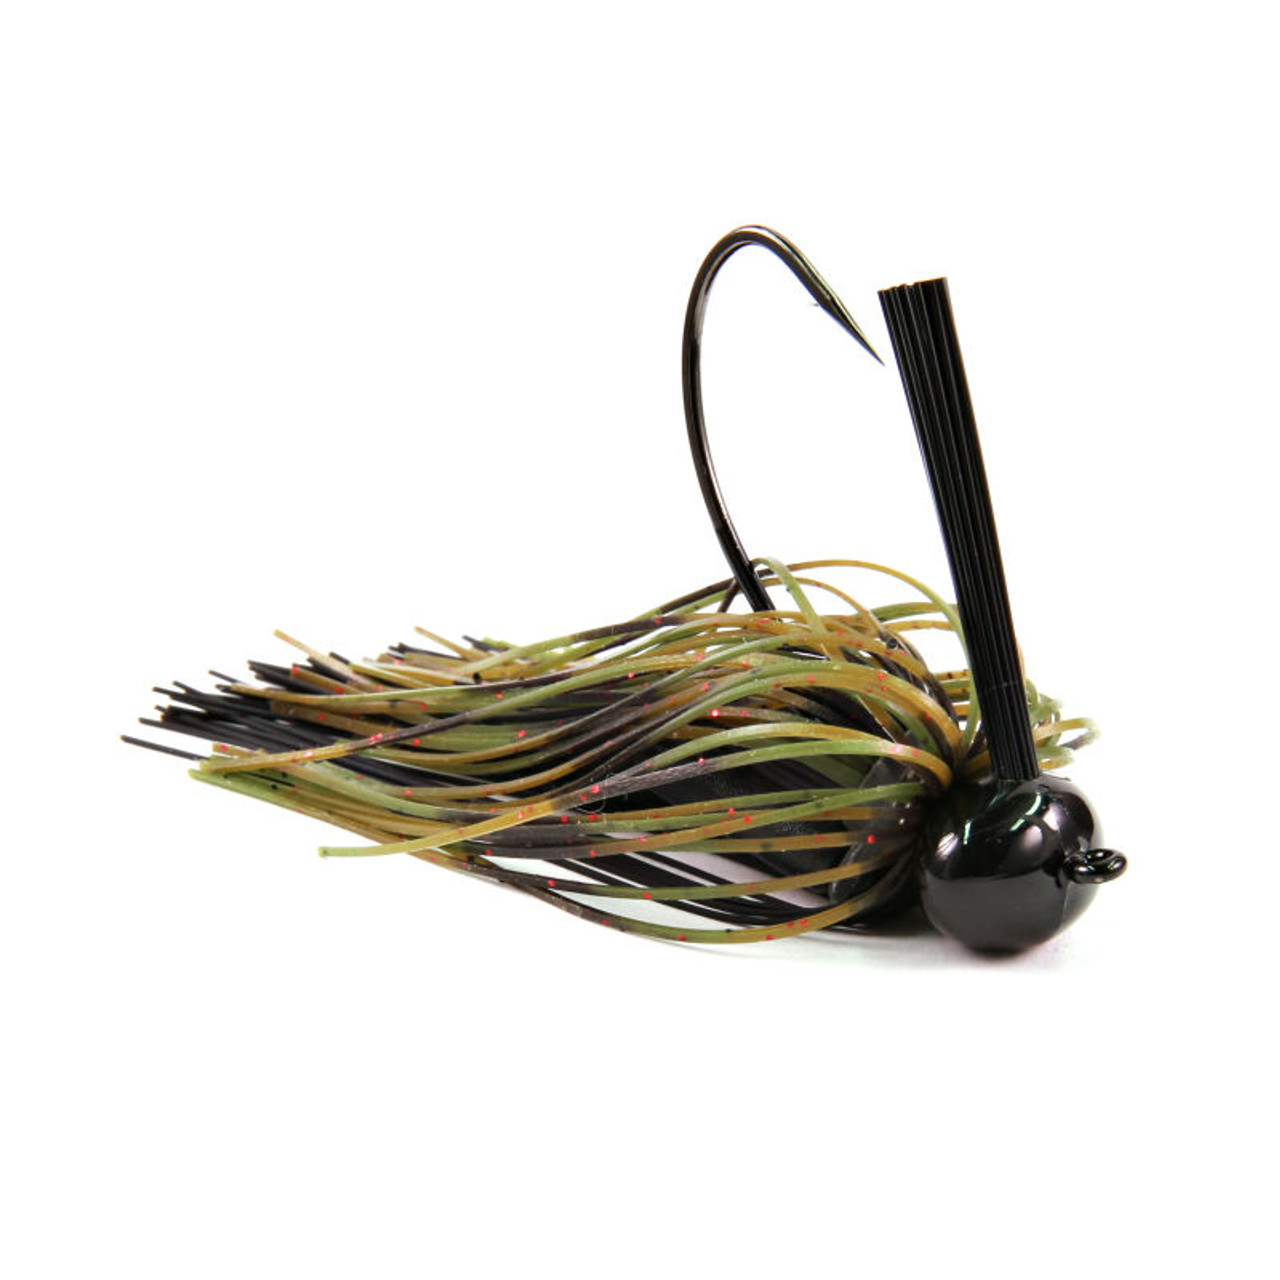 Silicon Bass Artficial Football Flipping Jig Rubber Skirt Fishing Bait Lure Hook